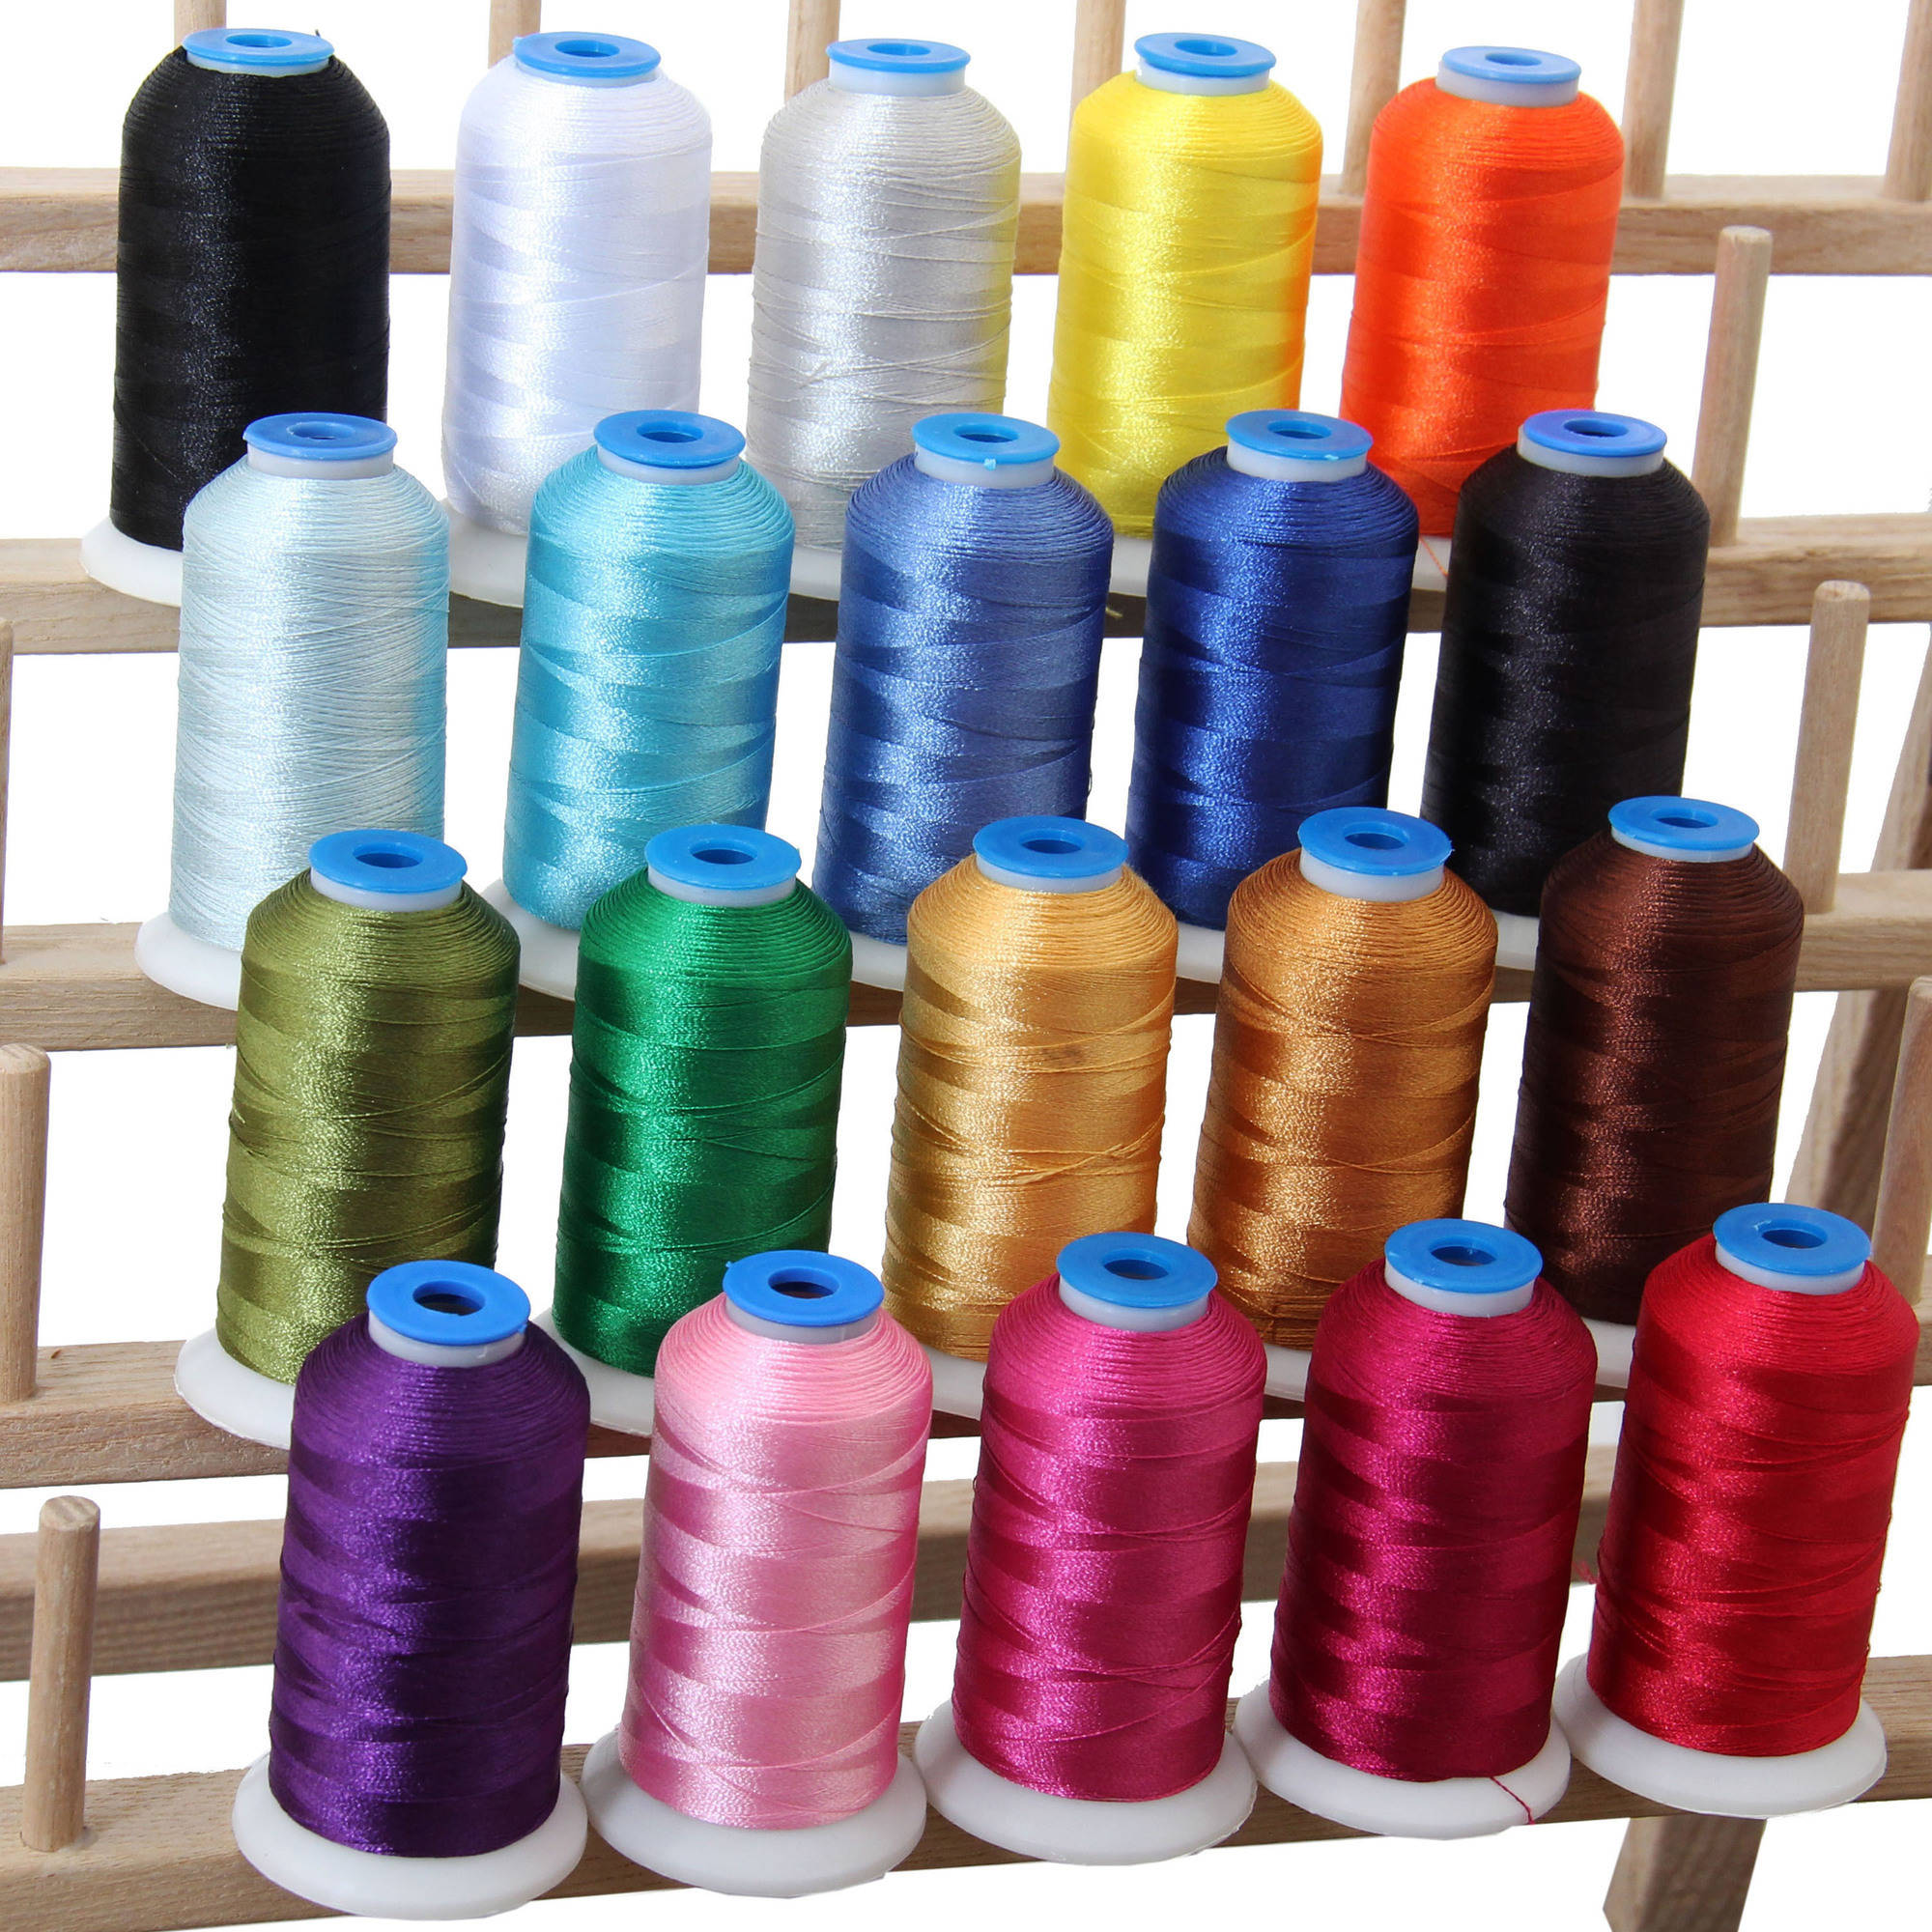 Threadart 20 Cone Set Polyester Embroidery Thread 1000m Spools, 11 Different Sets Available